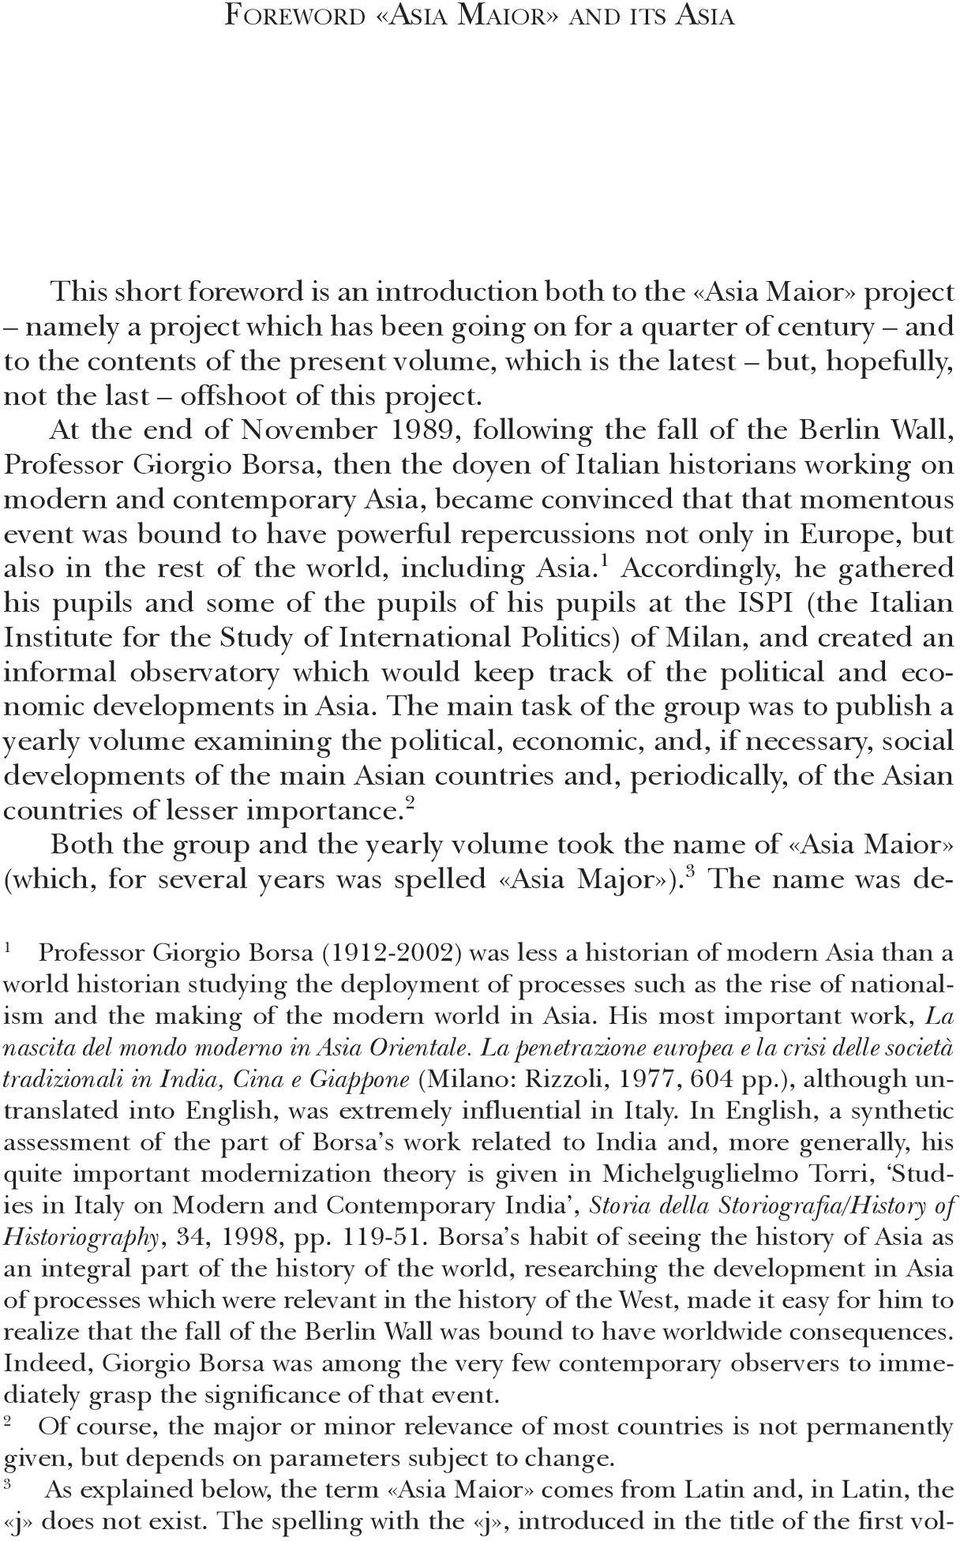 At the end of November 1989, following the fall of the Berlin Wall, Professor Giorgio Borsa, then the doyen of Italian historians working on modern and contemporary Asia, became convinced that that